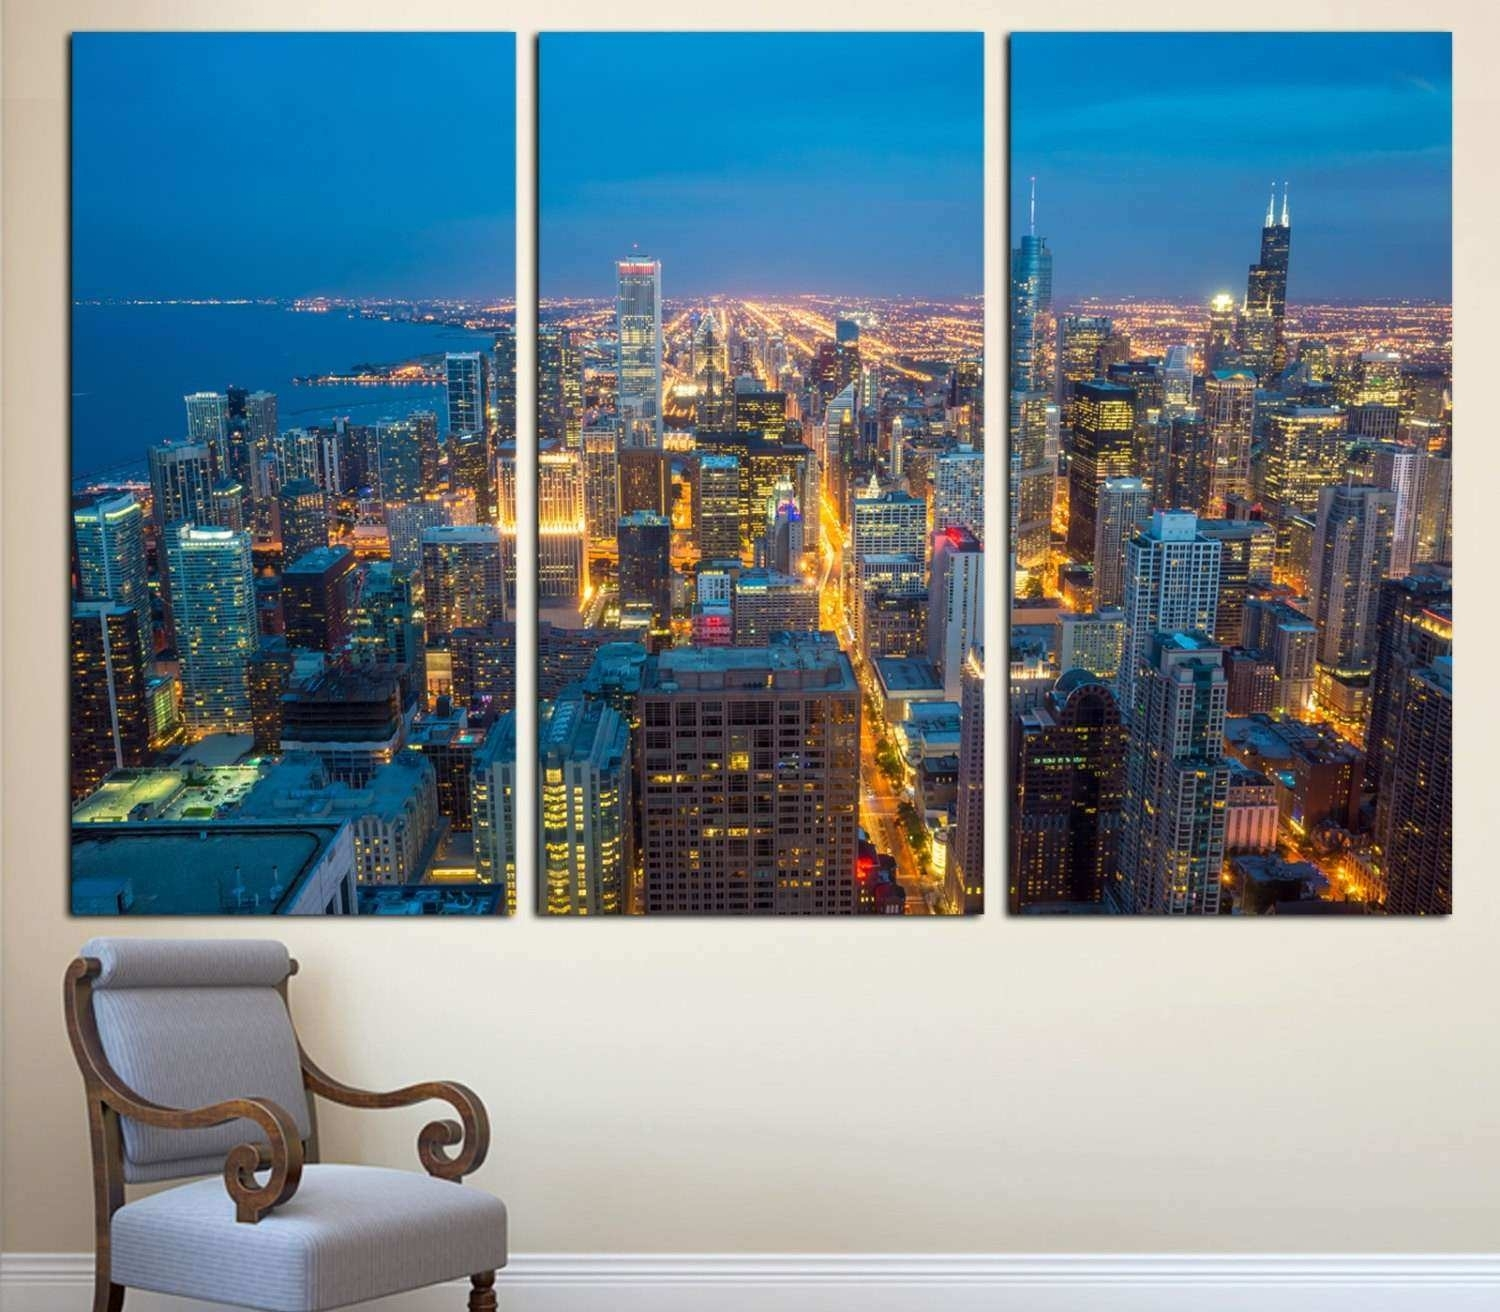 Chicago Wall Art Lovely Chicago City Skyline Art Canvas Print 3 pertaining to Chicago Wall Art (Image 11 of 20)